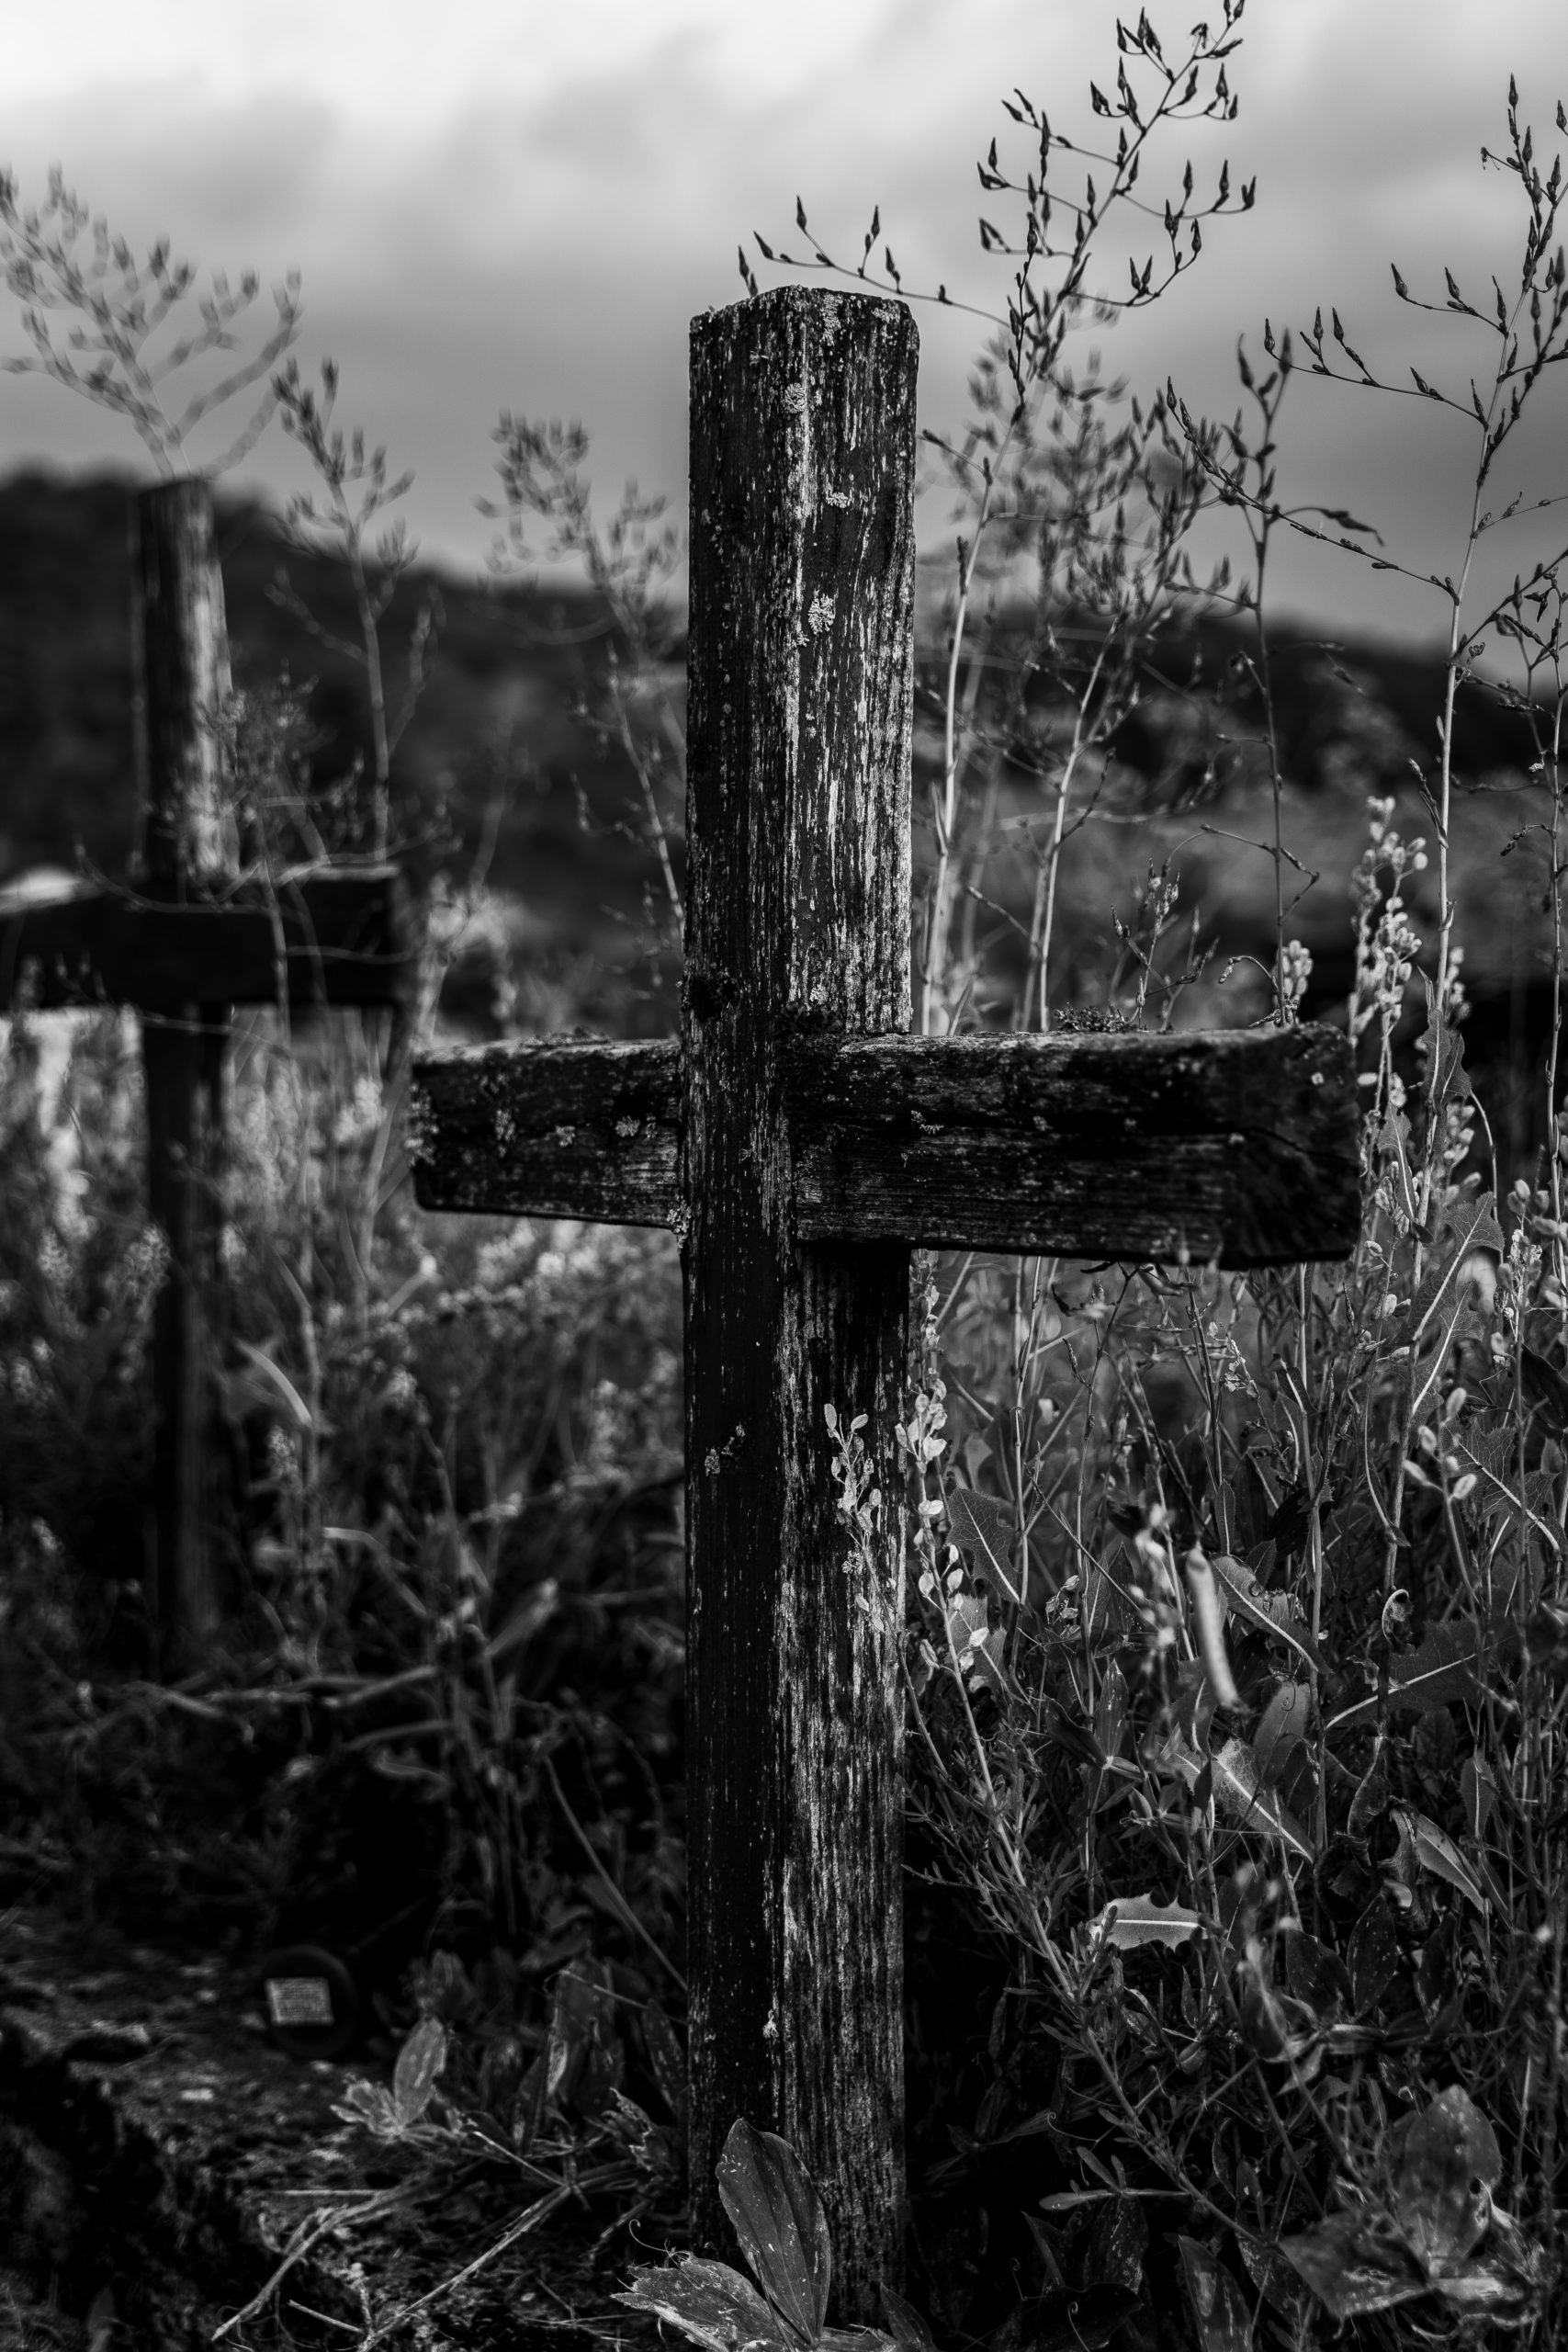 The Reminders of the Cross